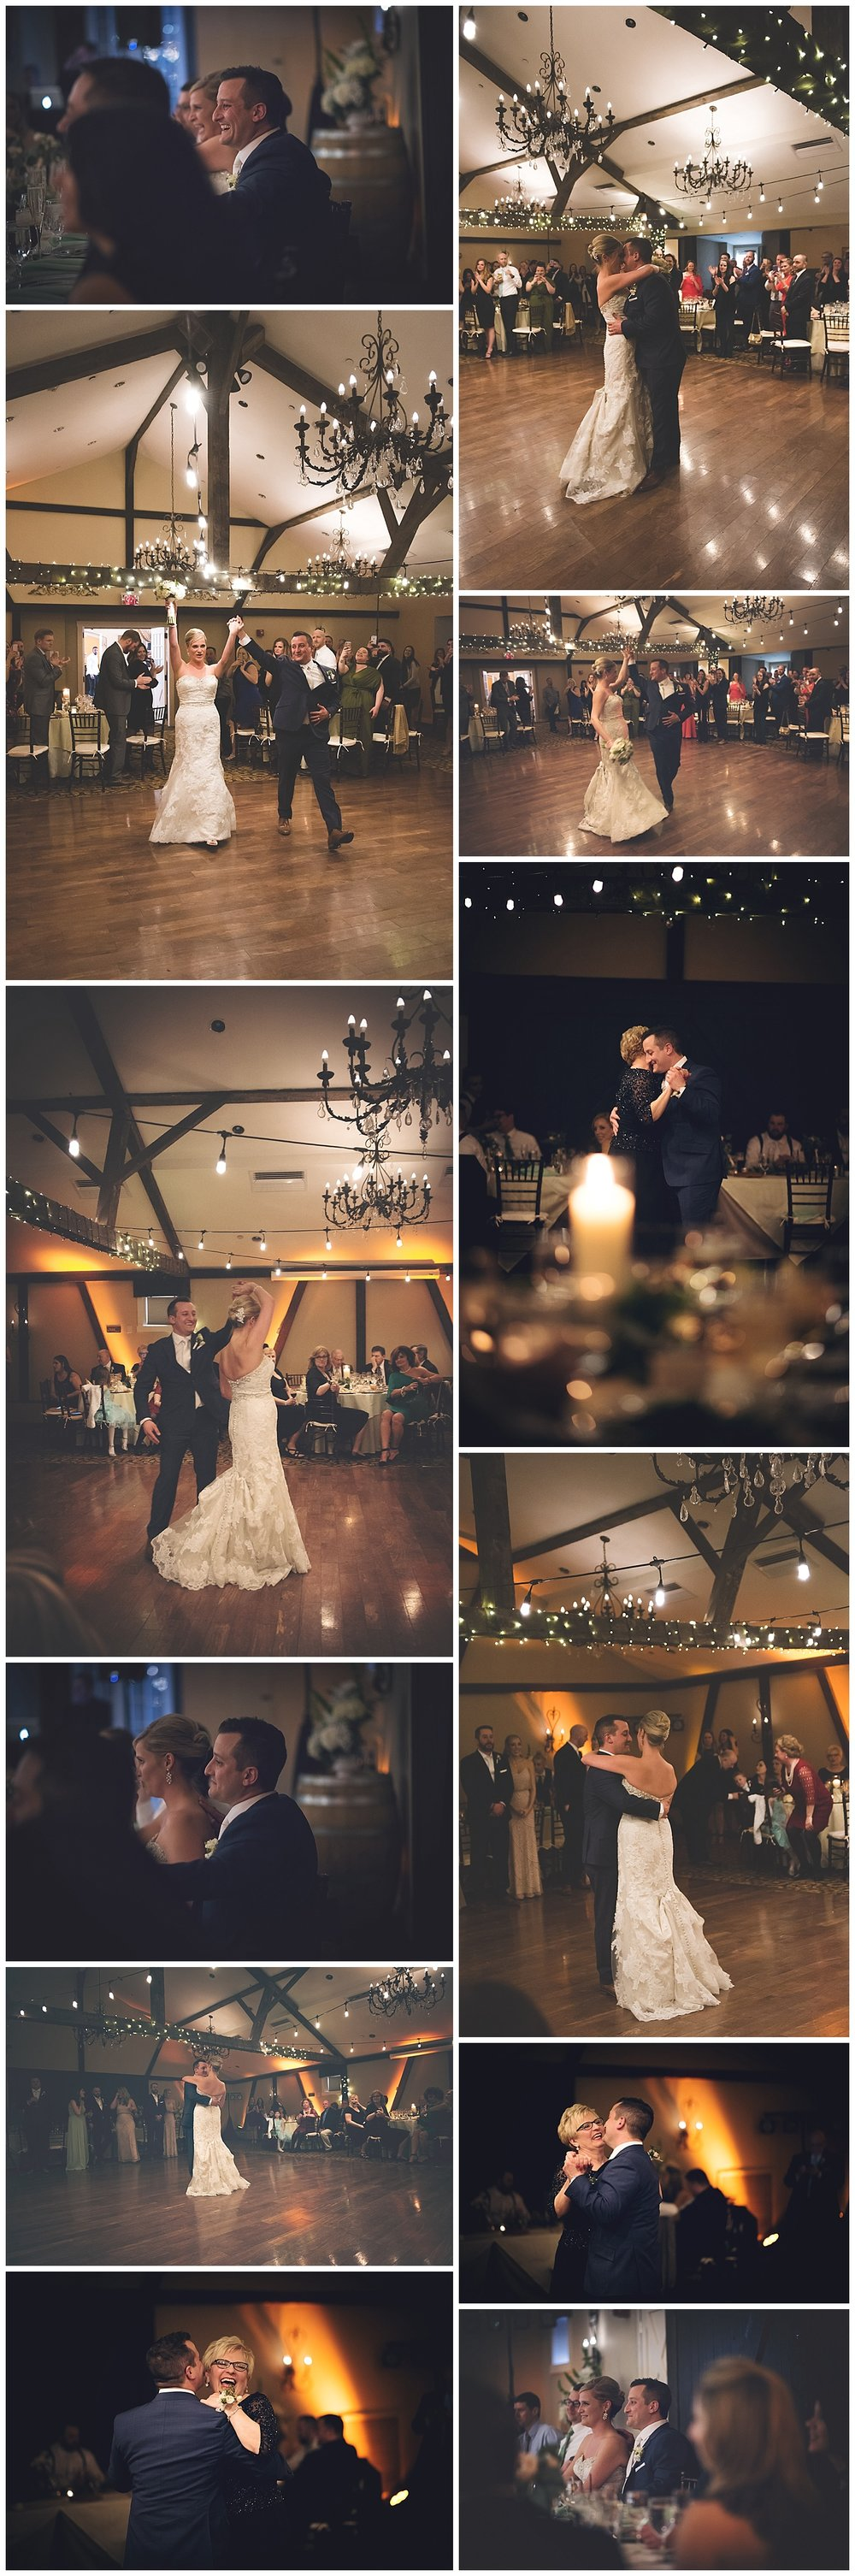 Wedding_Photographer_In_NEPA_Normandy_Farm_Reception_First_Dance_0015.jpg